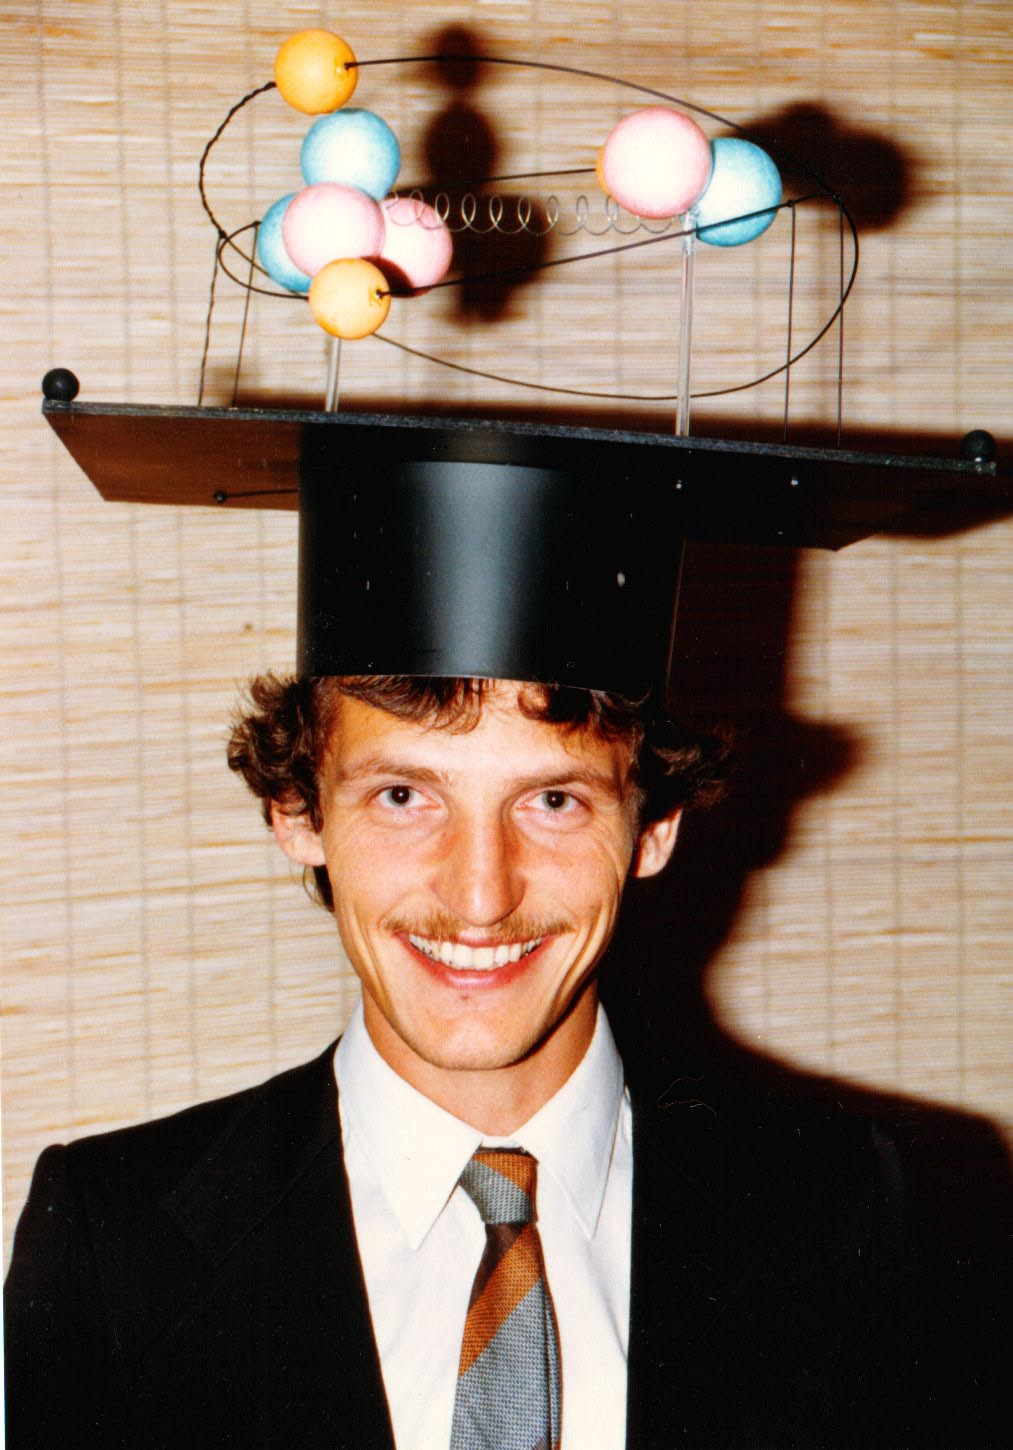 Such humorous mortar boards are a German academic tradition. on purely academic problems, and now wanted to gain experience with applied physics and how it connected with problems of the real world.